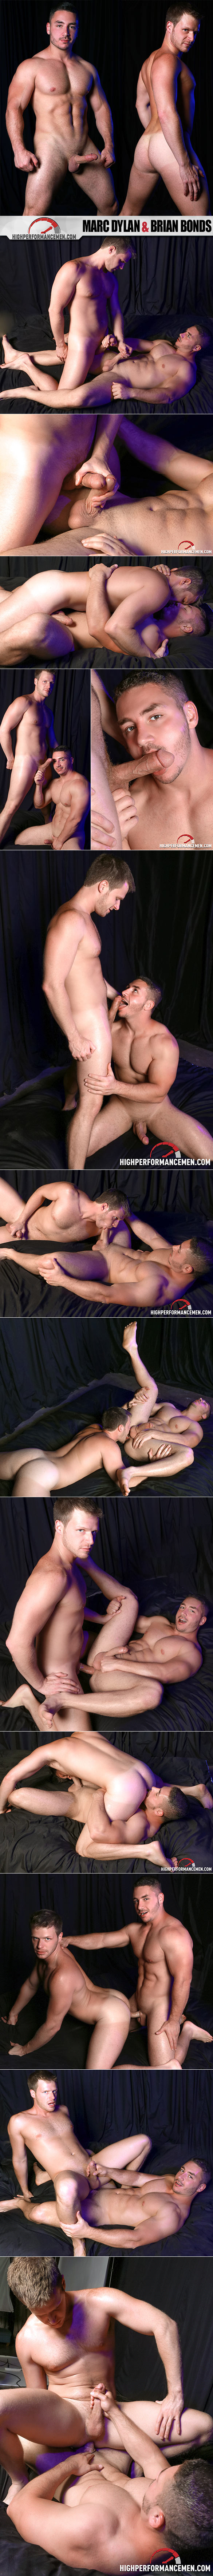 "High Performance Men: Marc Dylan and Brian Bonds fuck each other in ""Wet Dream: The Phantom Fuck"""